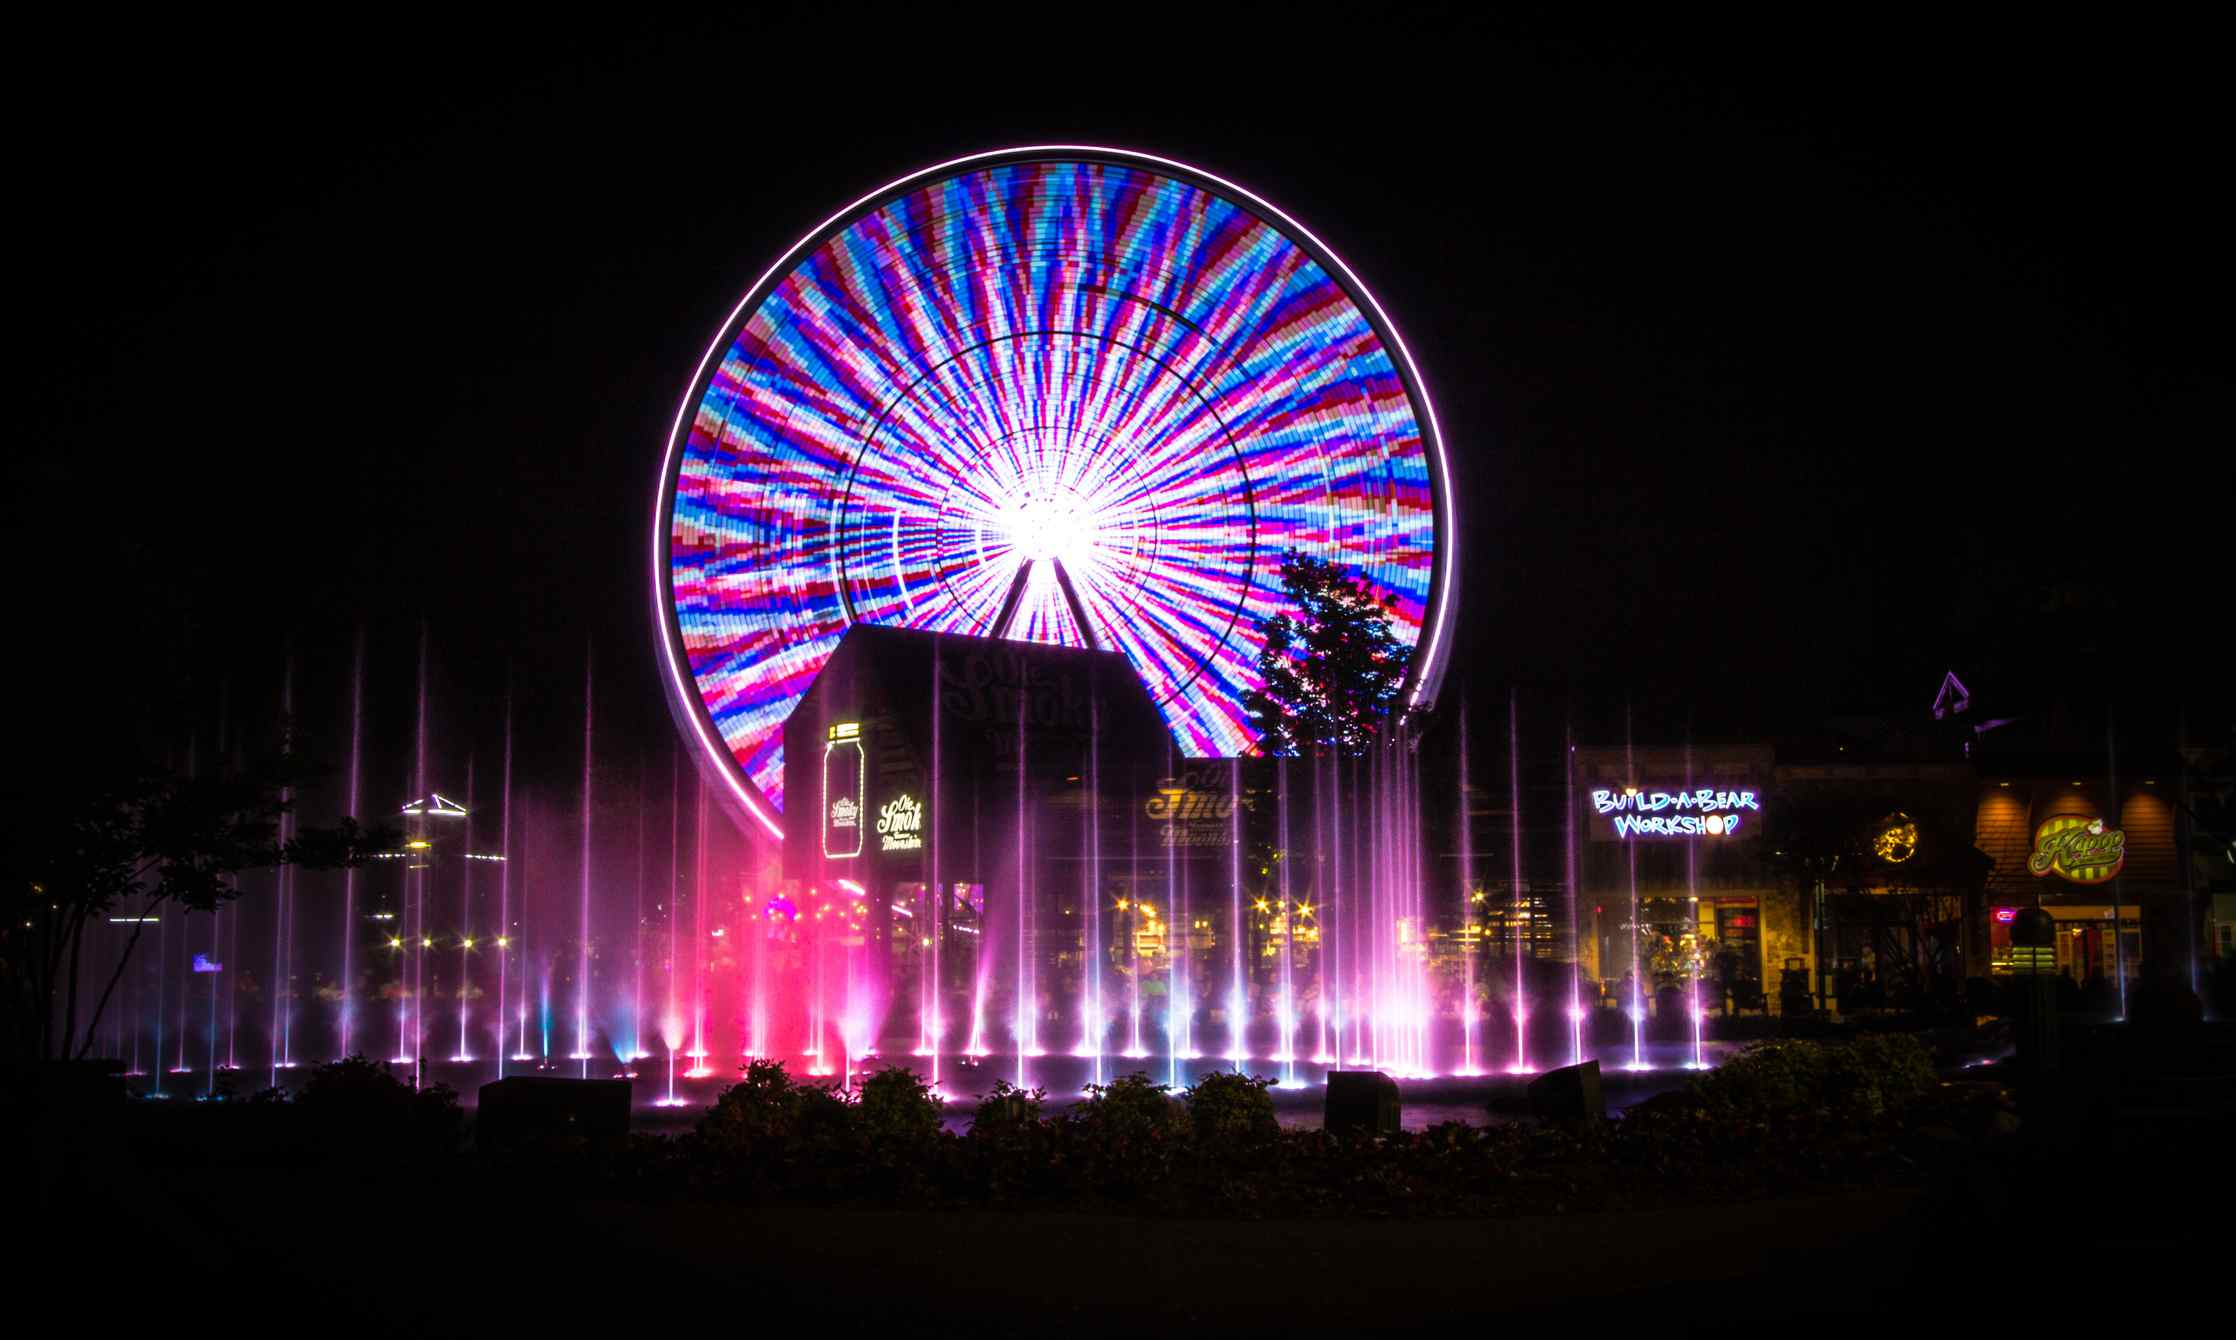 Illuminated fountains, shops and Ferris wheel at the Island entertainment complex in the Smoky Mountain resort town of Pigeon Forge, Tennessee